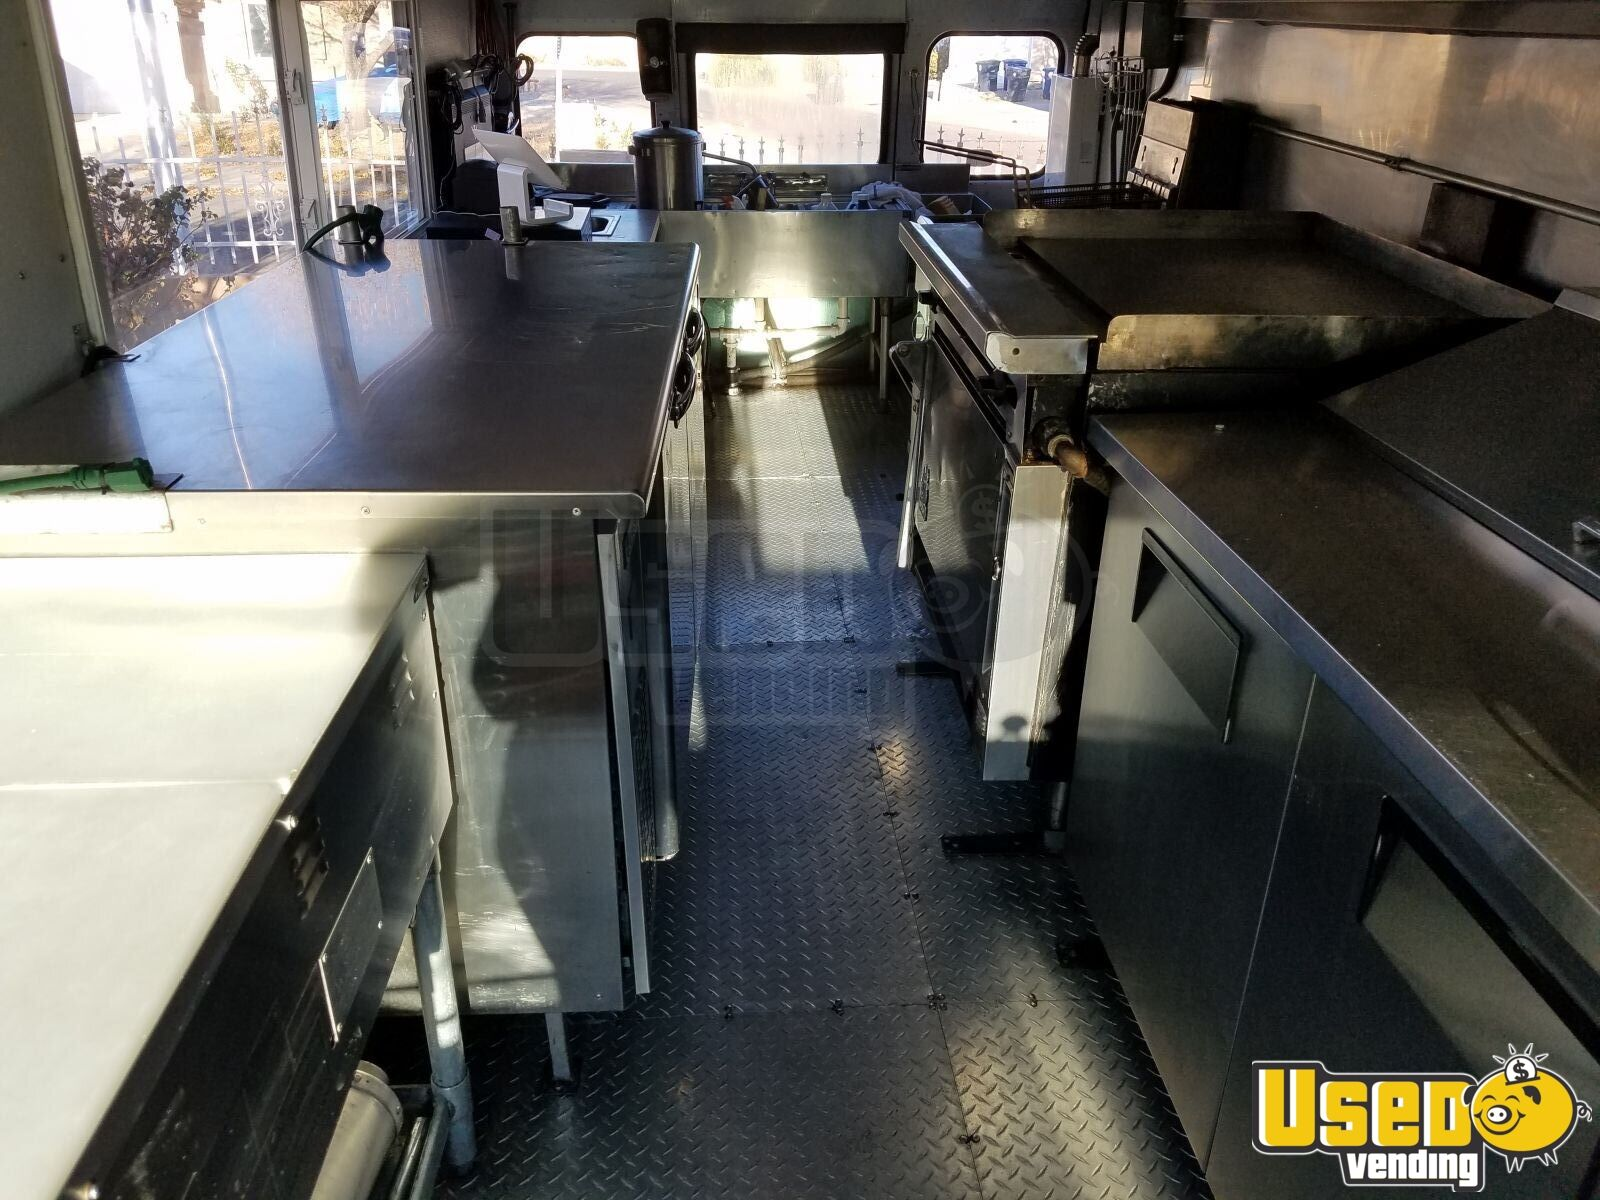 International 3600 Mobile Kitchen Food Truck / Bus for Sale in New Mexico - 6